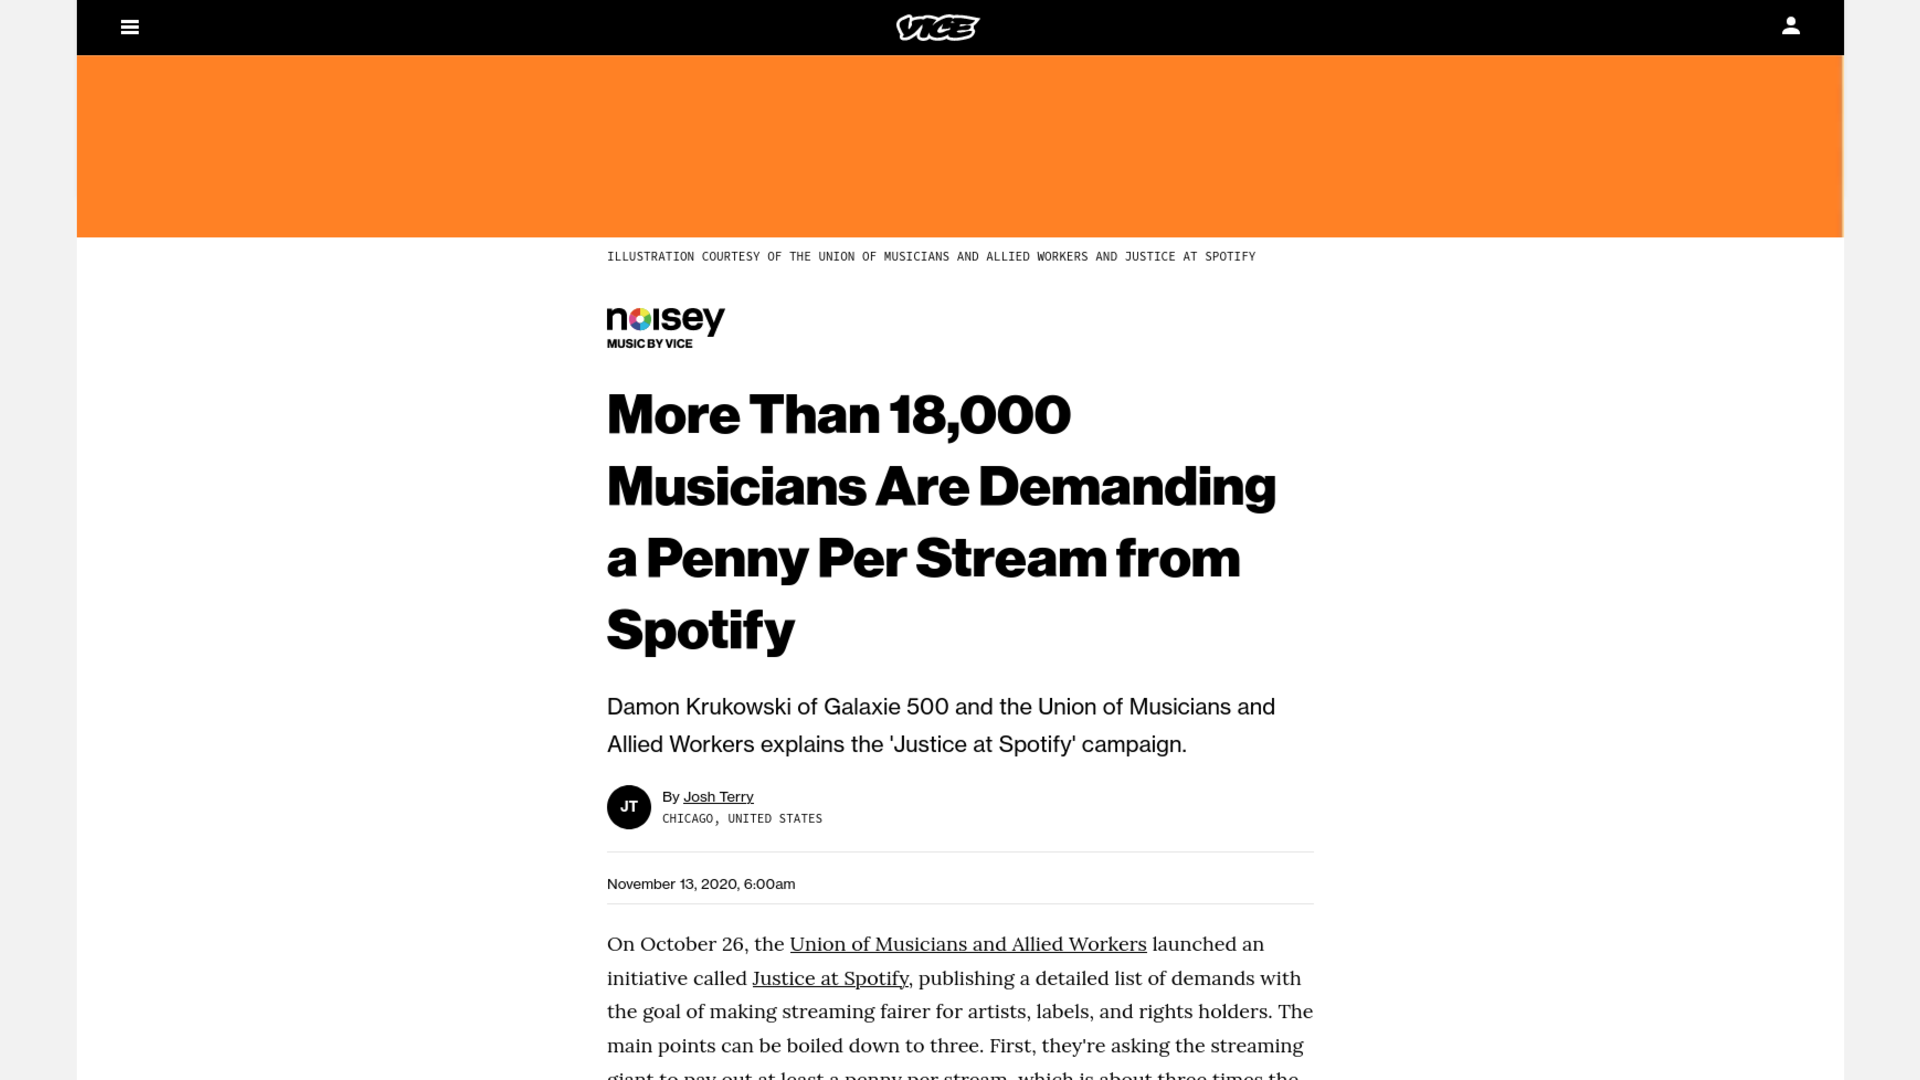 Fairness Rocks News More Than 18,000 Musicians Are Demanding a Penny Per Stream from Spotify